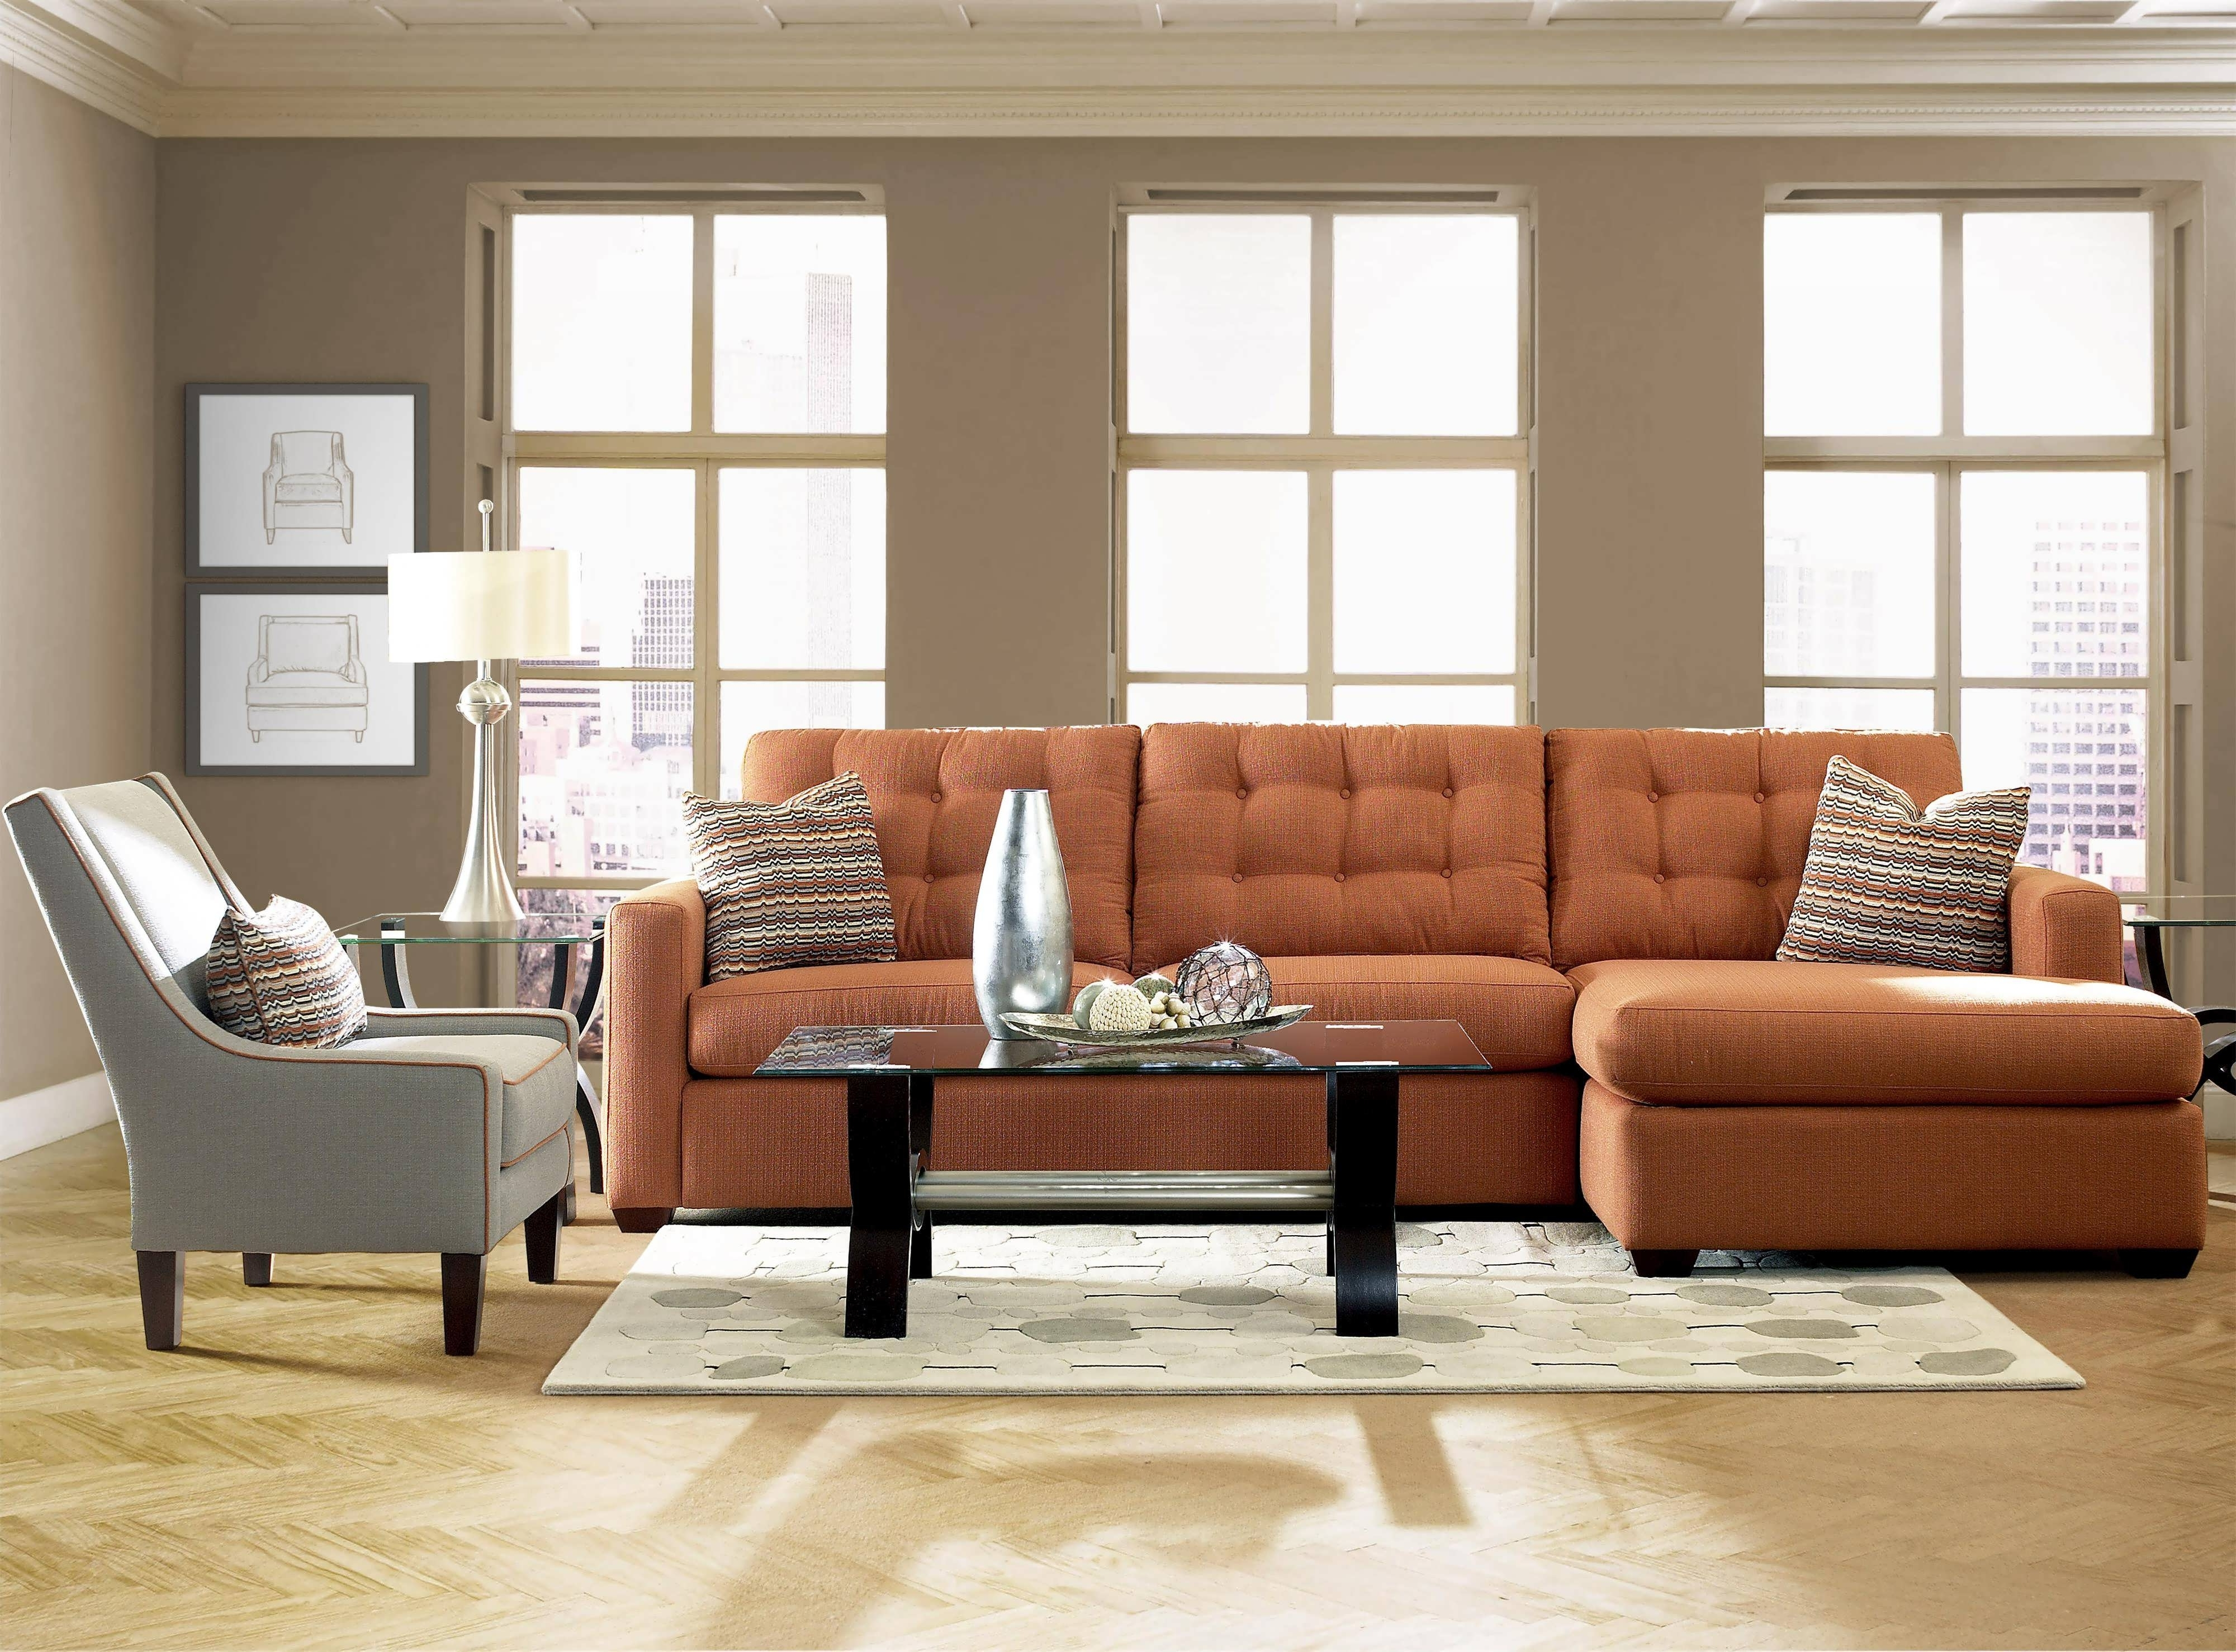 Sofa Chaise Sectionals Pertaining To Most Popular Sofa : Gray Sectional Sectionals For Sale Small L Shaped Sofa (View 13 of 15)